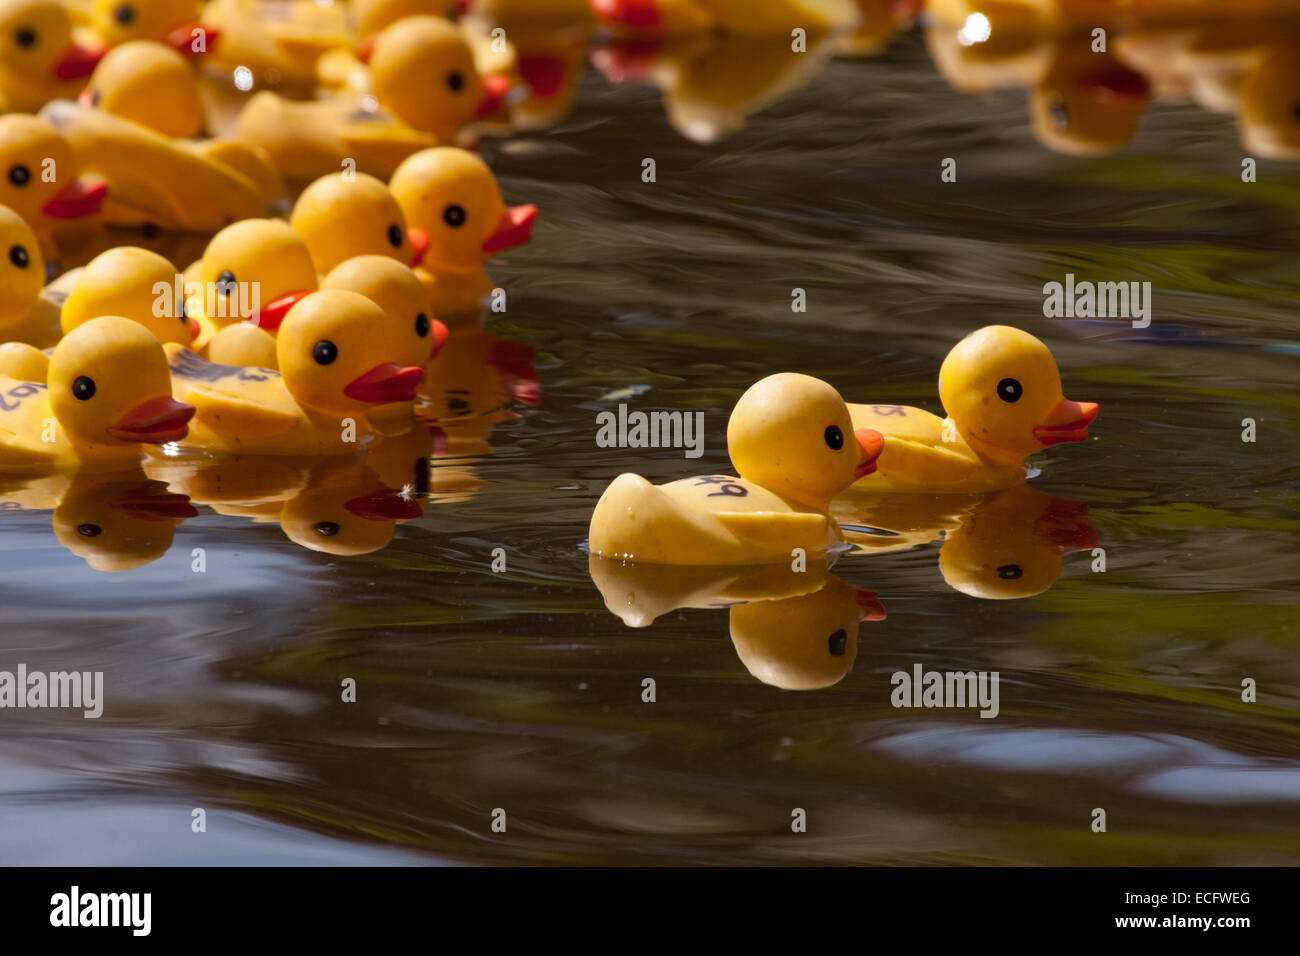 Yellow Rubber Ducks In Line Stock Photos & Yellow Rubber Ducks In ...